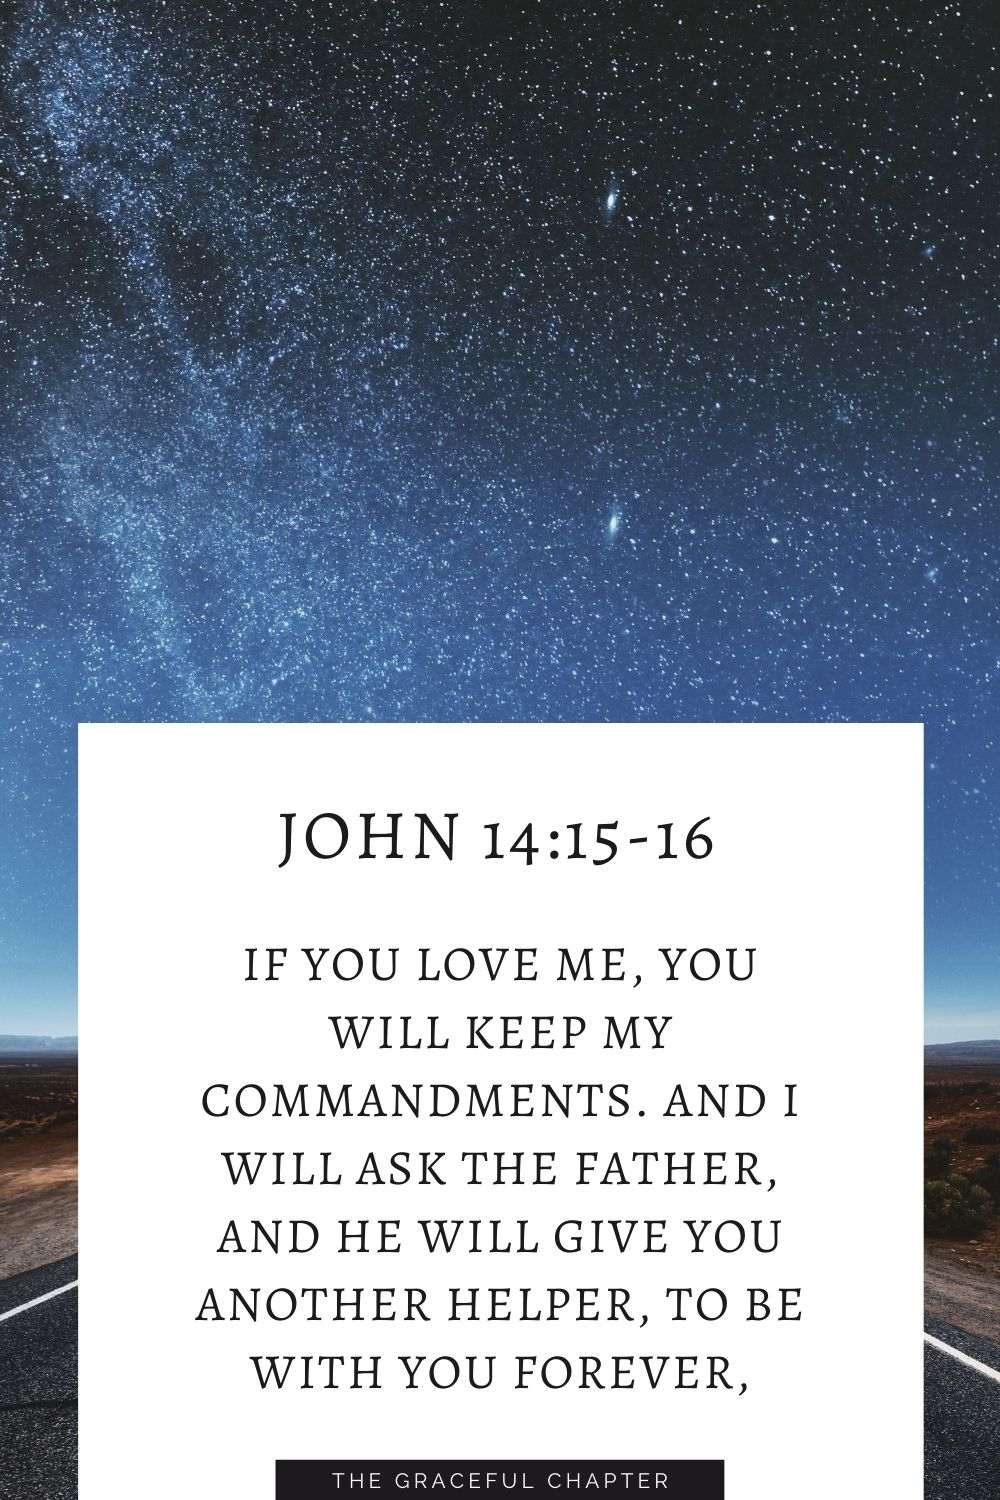 If you love me, you will keep my commandments.And I will ask the Father, and he will give you another Helper, to be with you forever, John 14:15-16